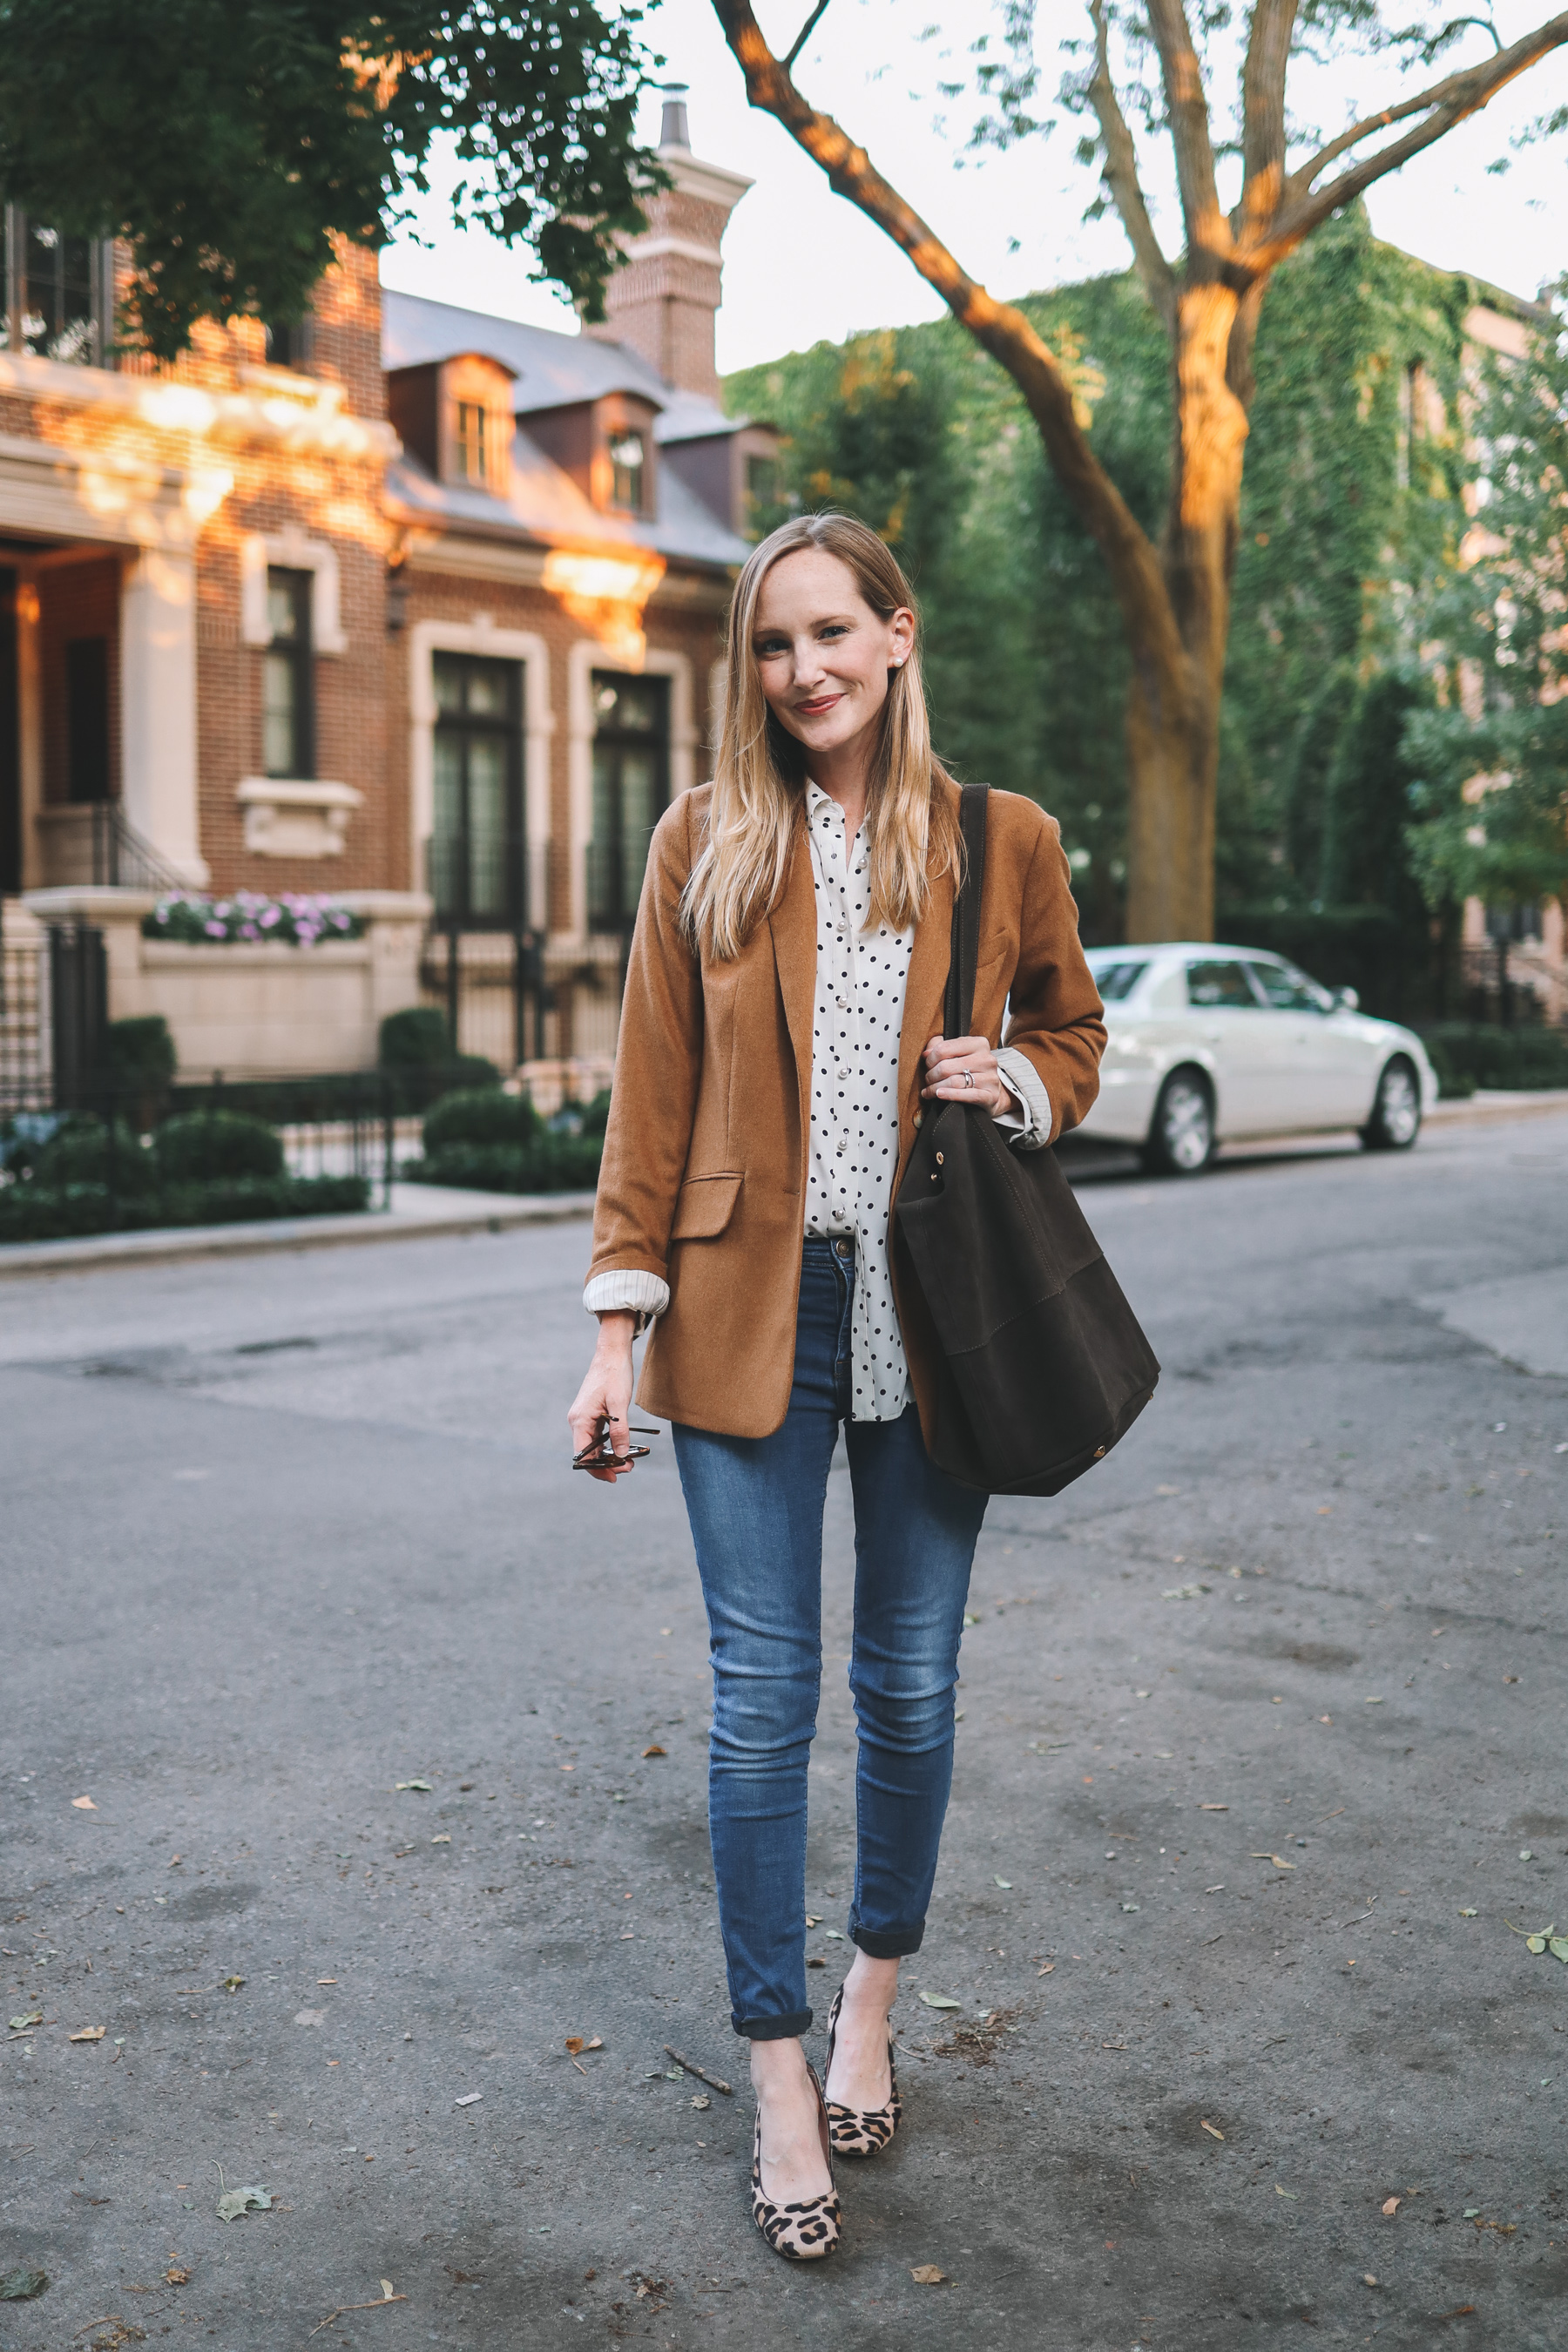 a woman in a brown jacket and a polka dot shirt wearing a leather tote bag